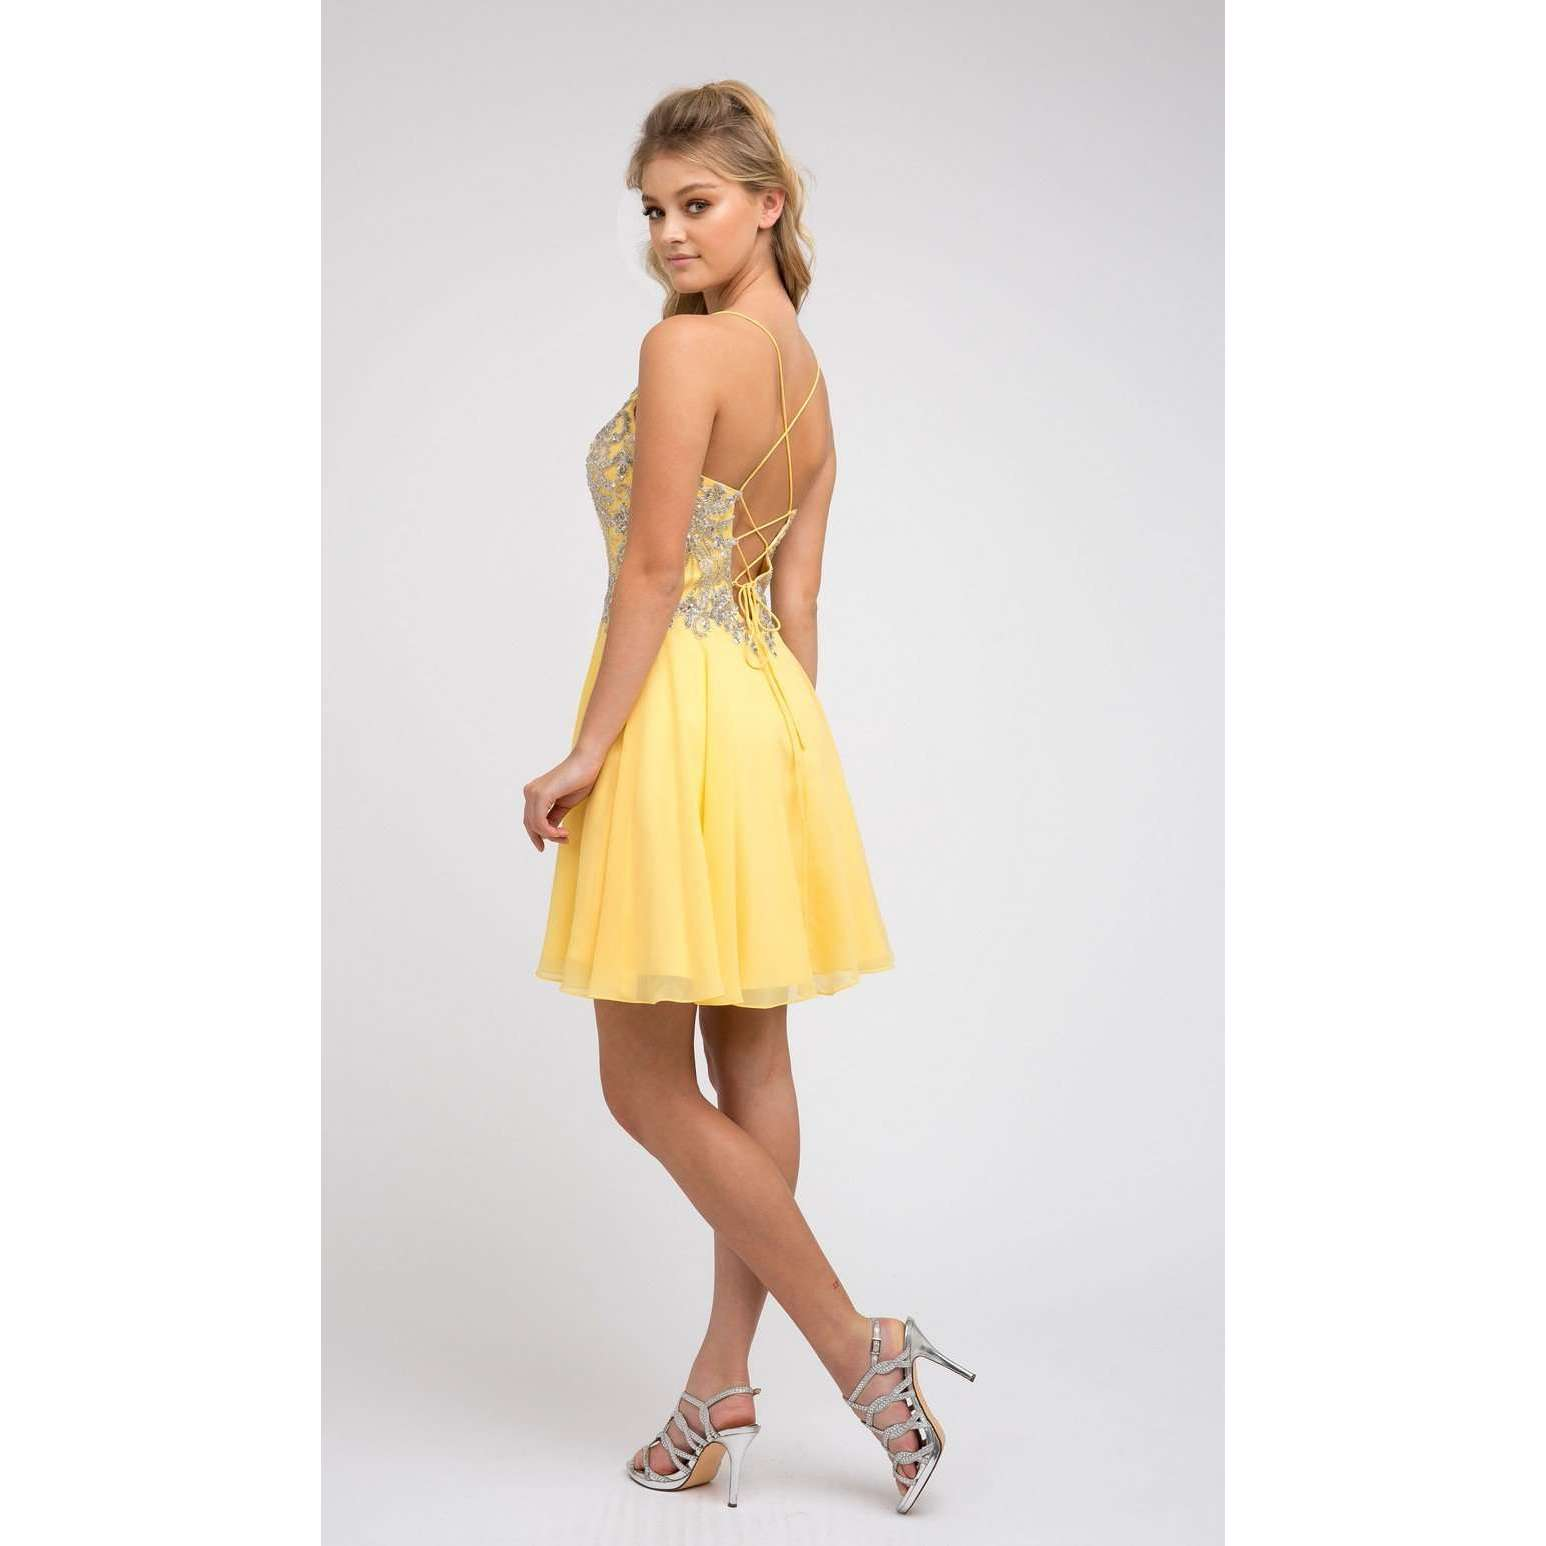 Rhinestone Embellished Chiffon Homecoming Dress 845 - Julietdresses